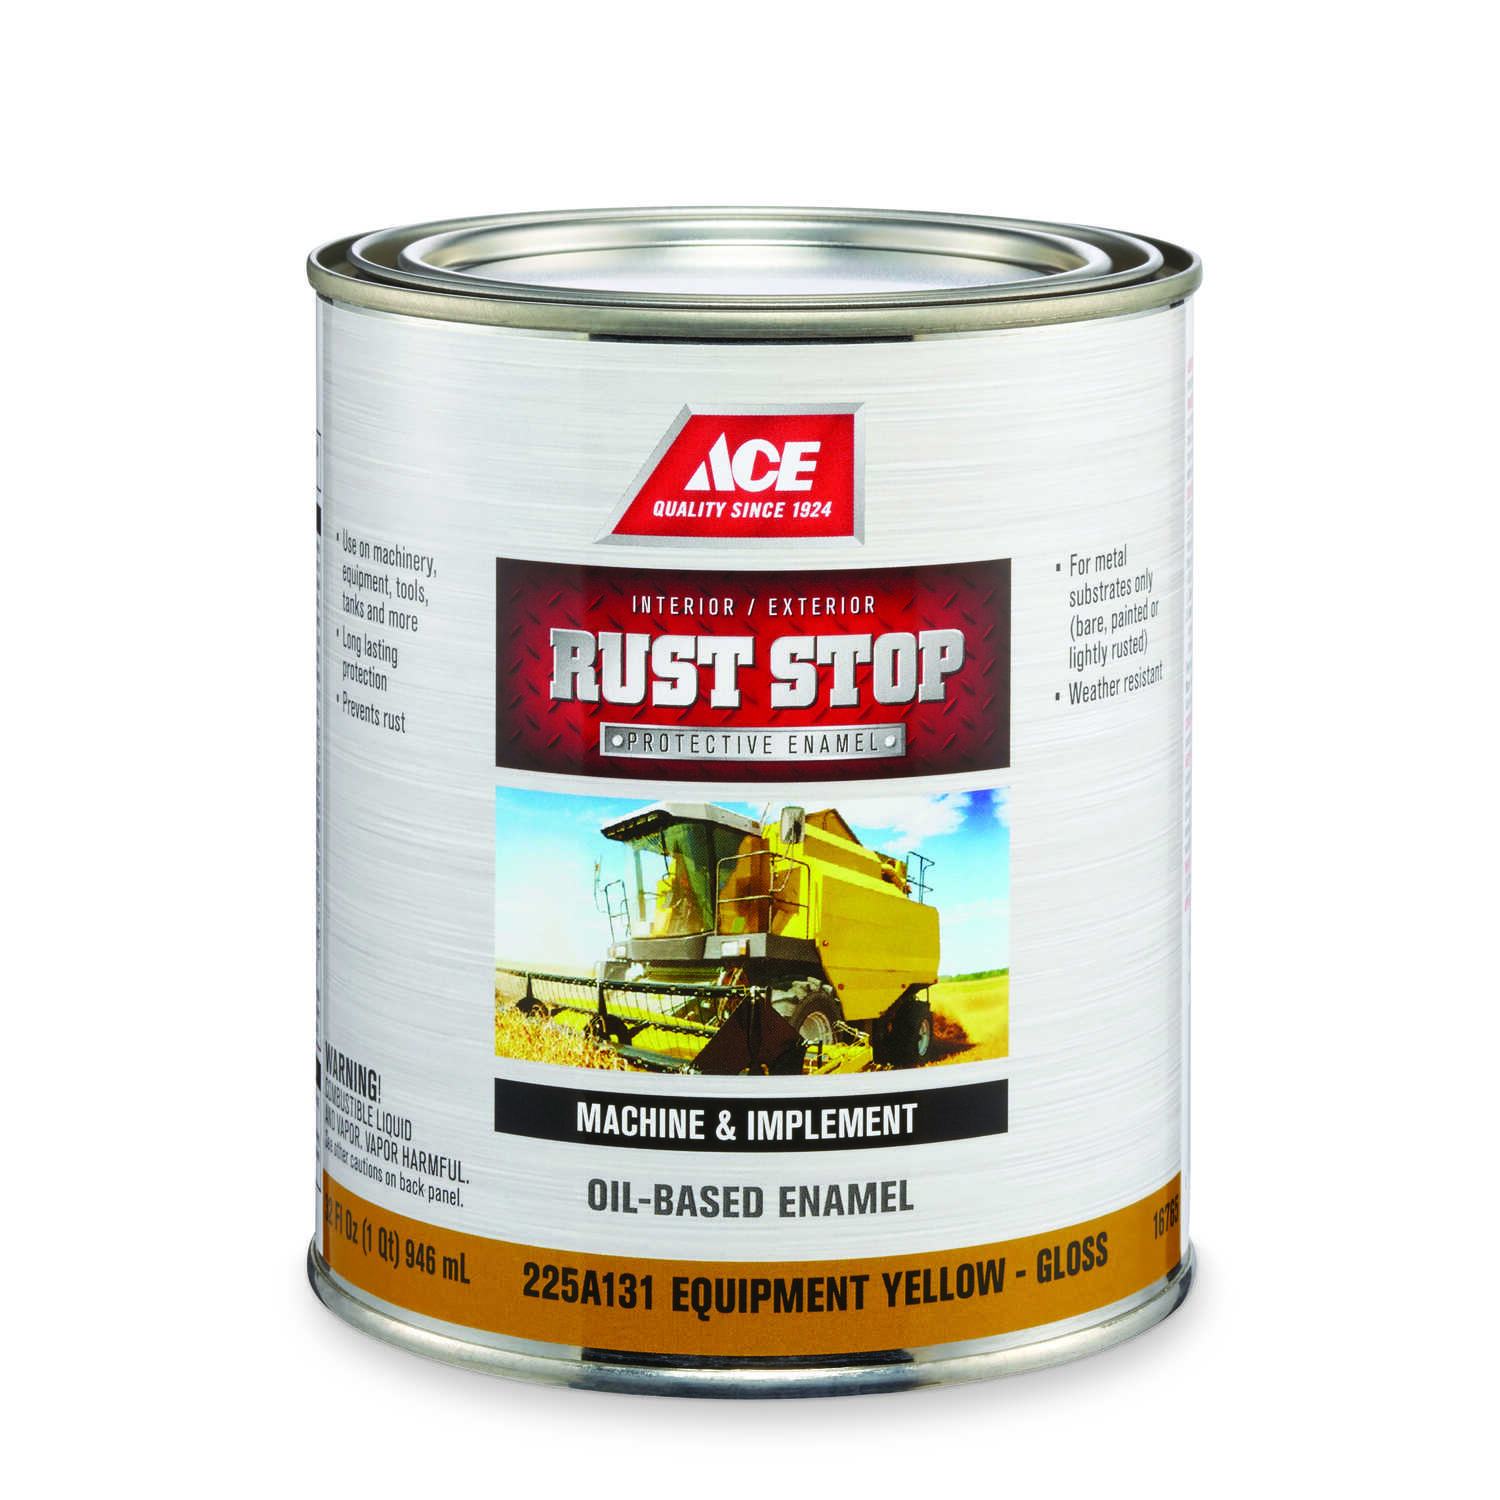 Ace  Rust Stop  Indoor and Outdoor  Gloss  Equipment Yellow  Rust Prevention Paint  1 qt.